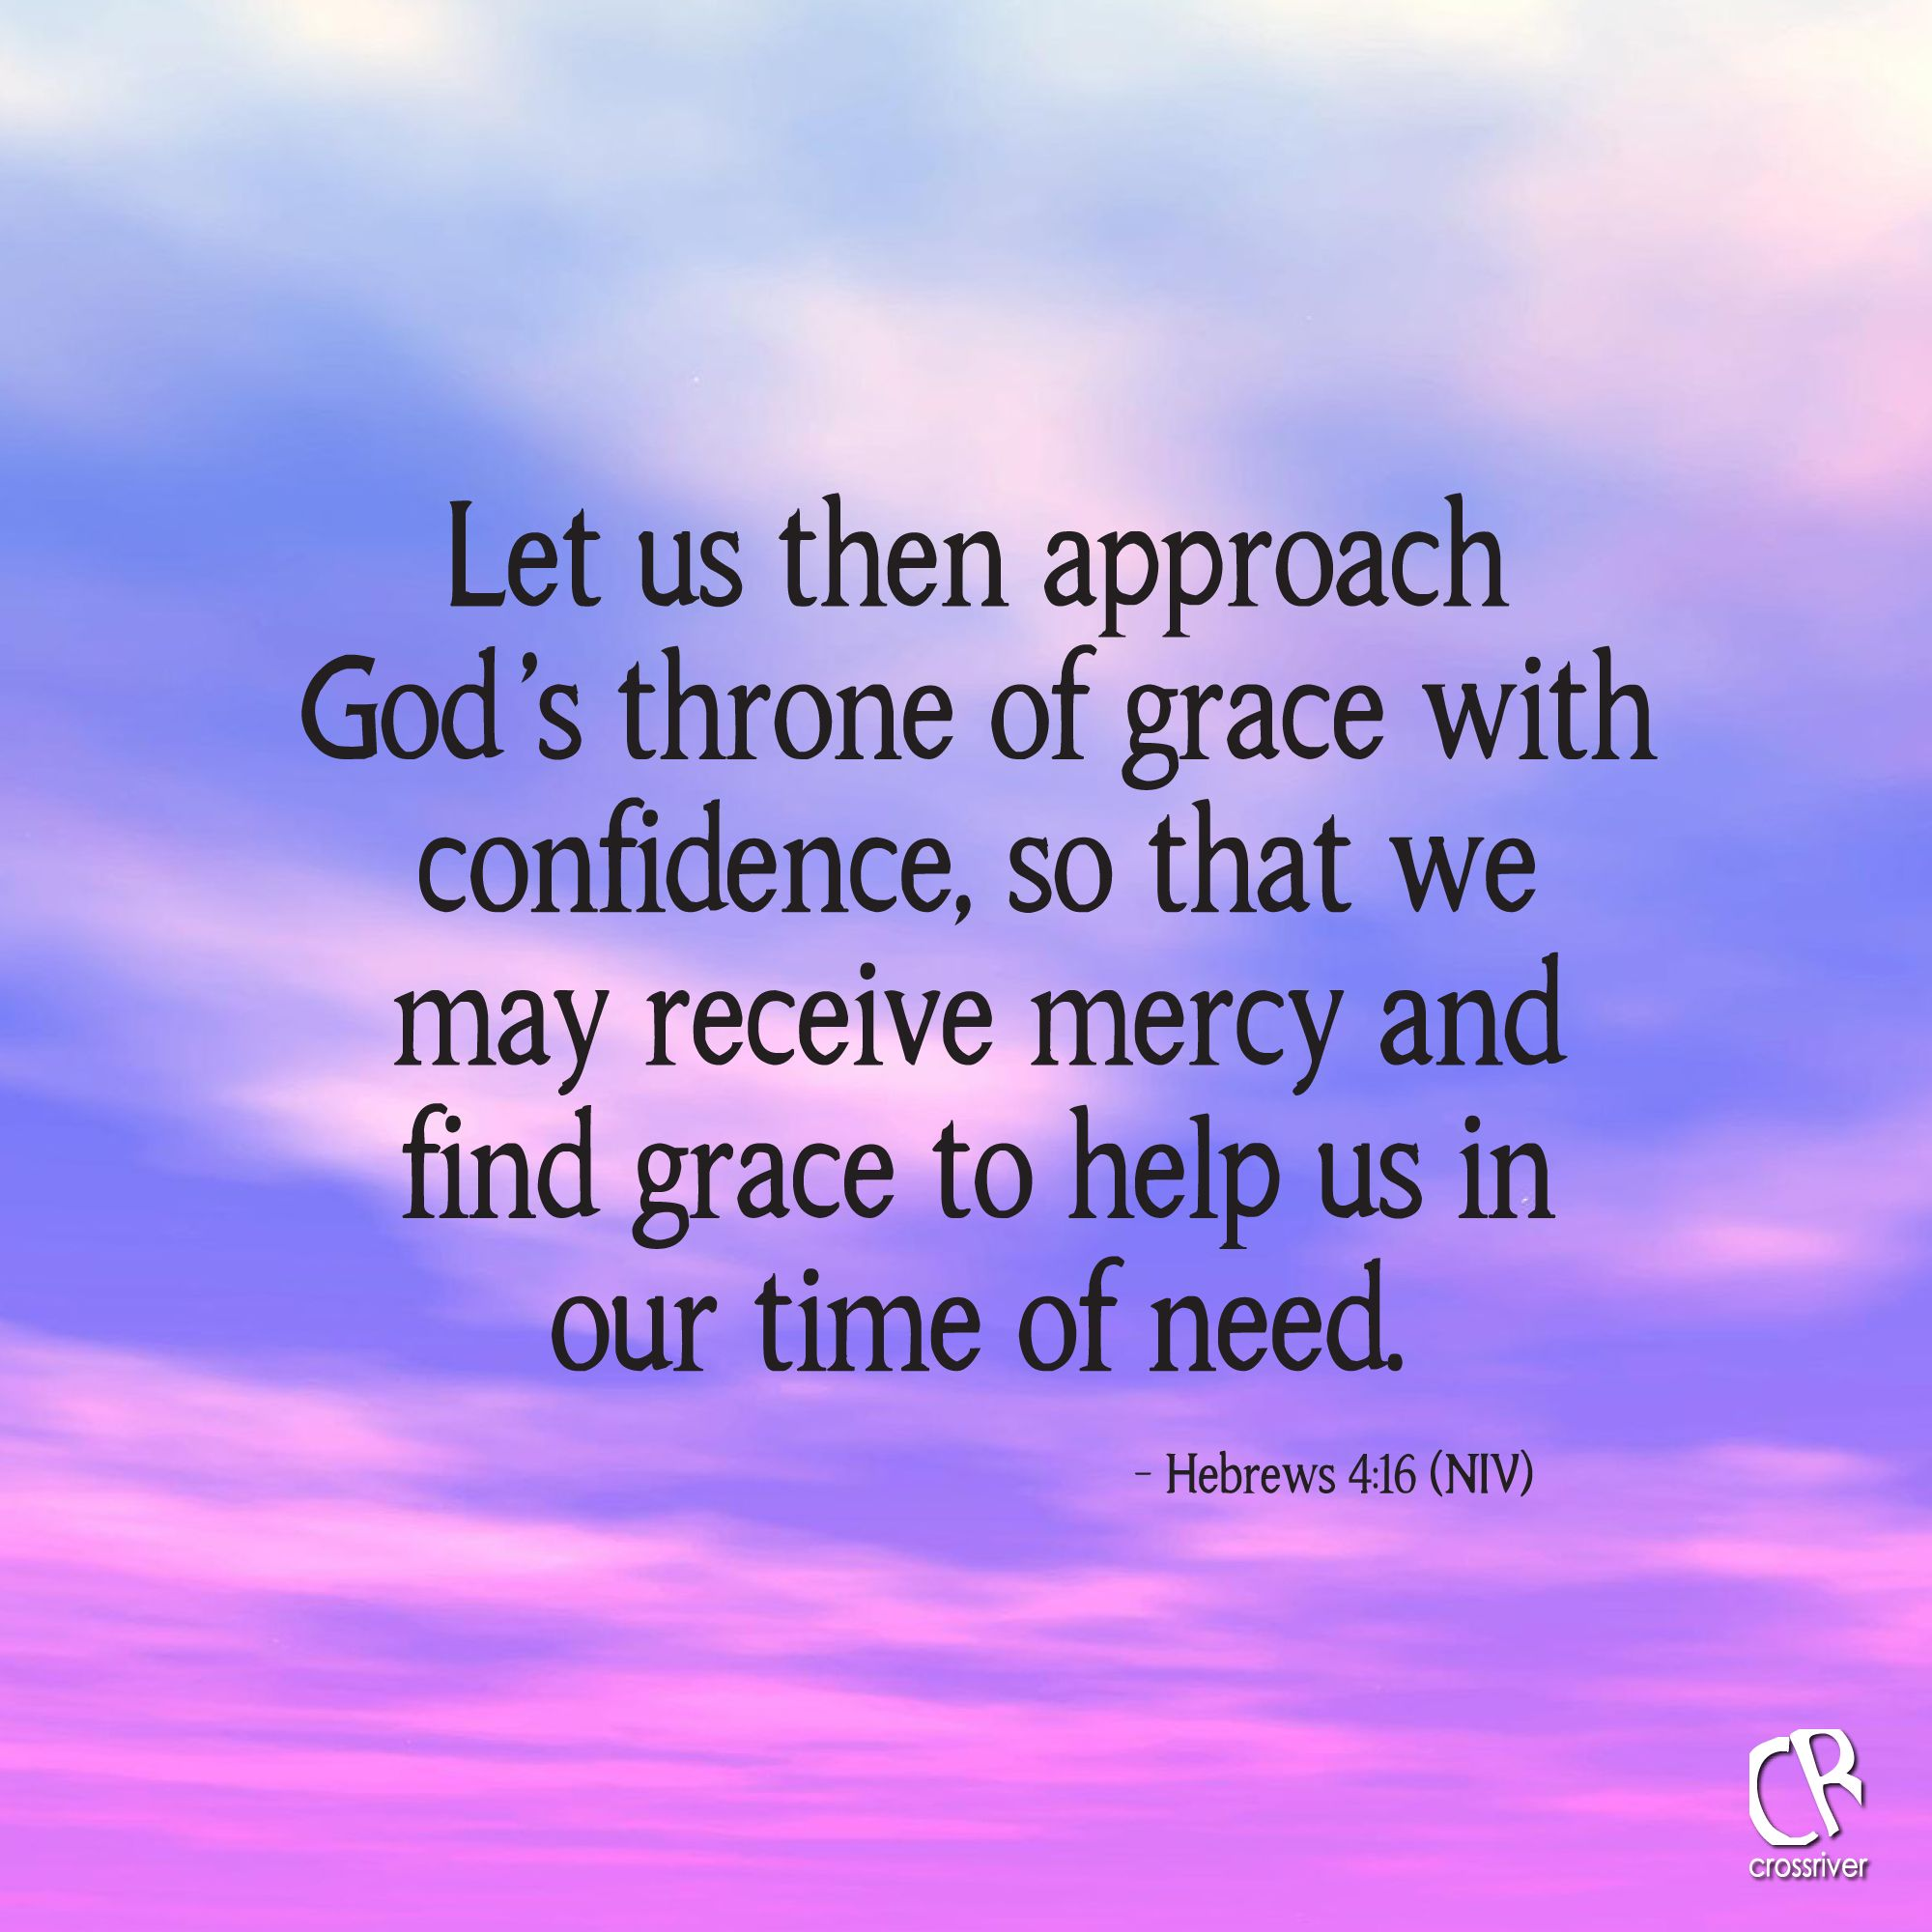 In Time Of Need Quotes: Let Us Then Approach God's Throne Of Grace With Confidence